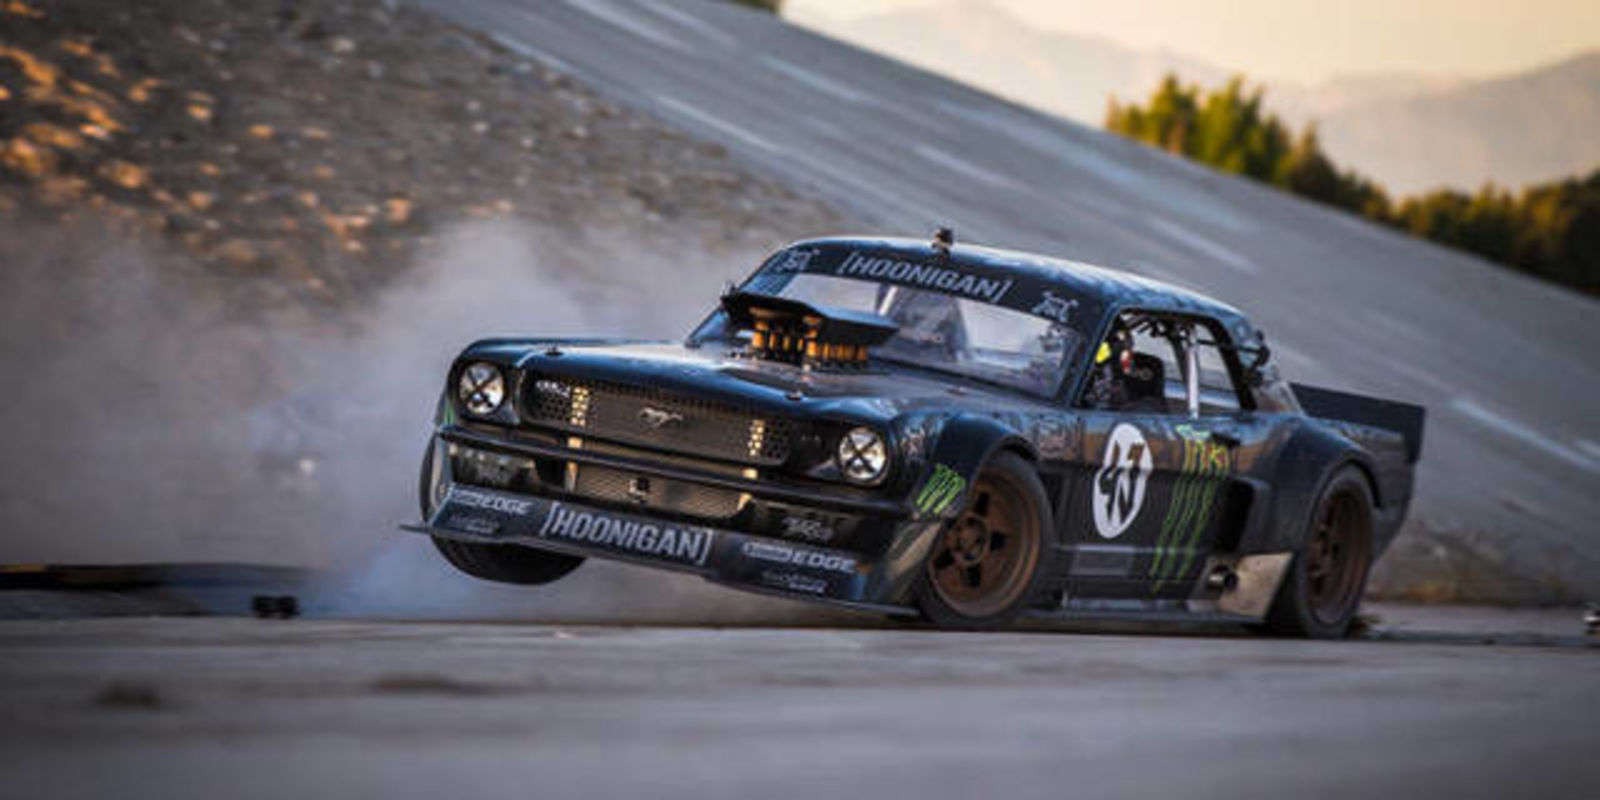 Watch It Ken Block Tears Up La In 845 Hp Mustang In